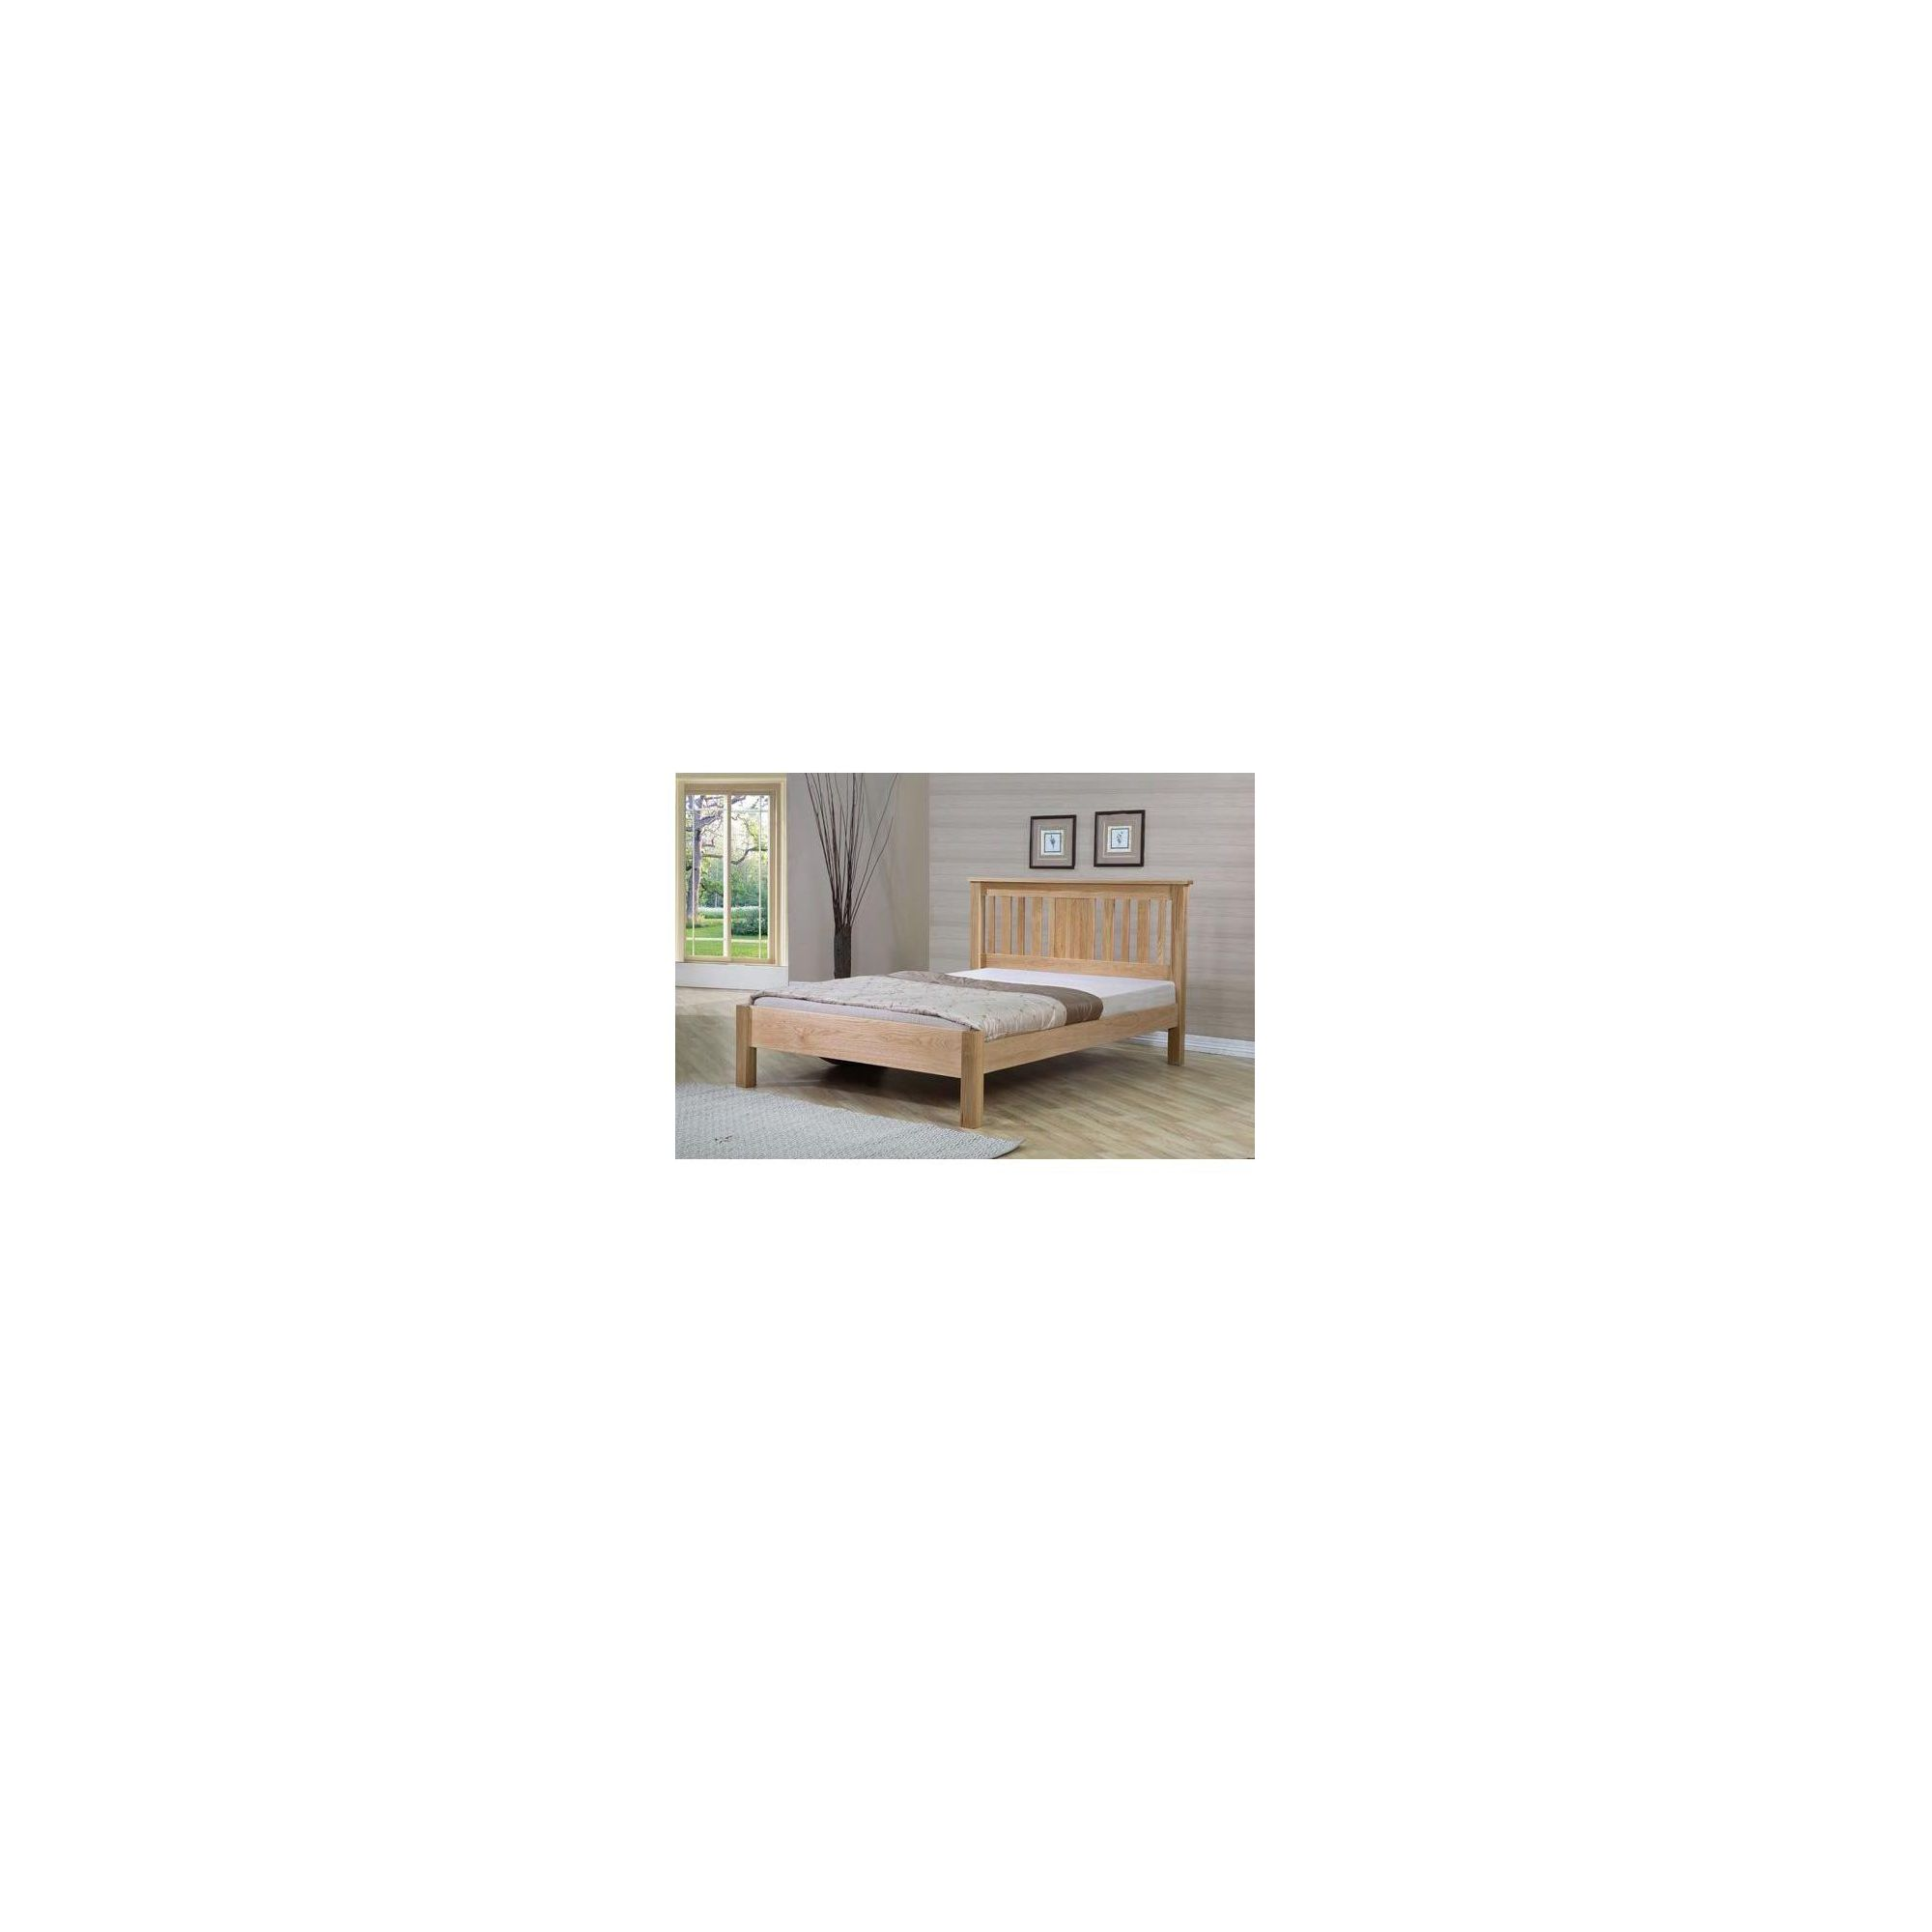 Sleepy Valley Oregon Bed - 2 Underbed Drawers/ Oak - Double at Tesco Direct